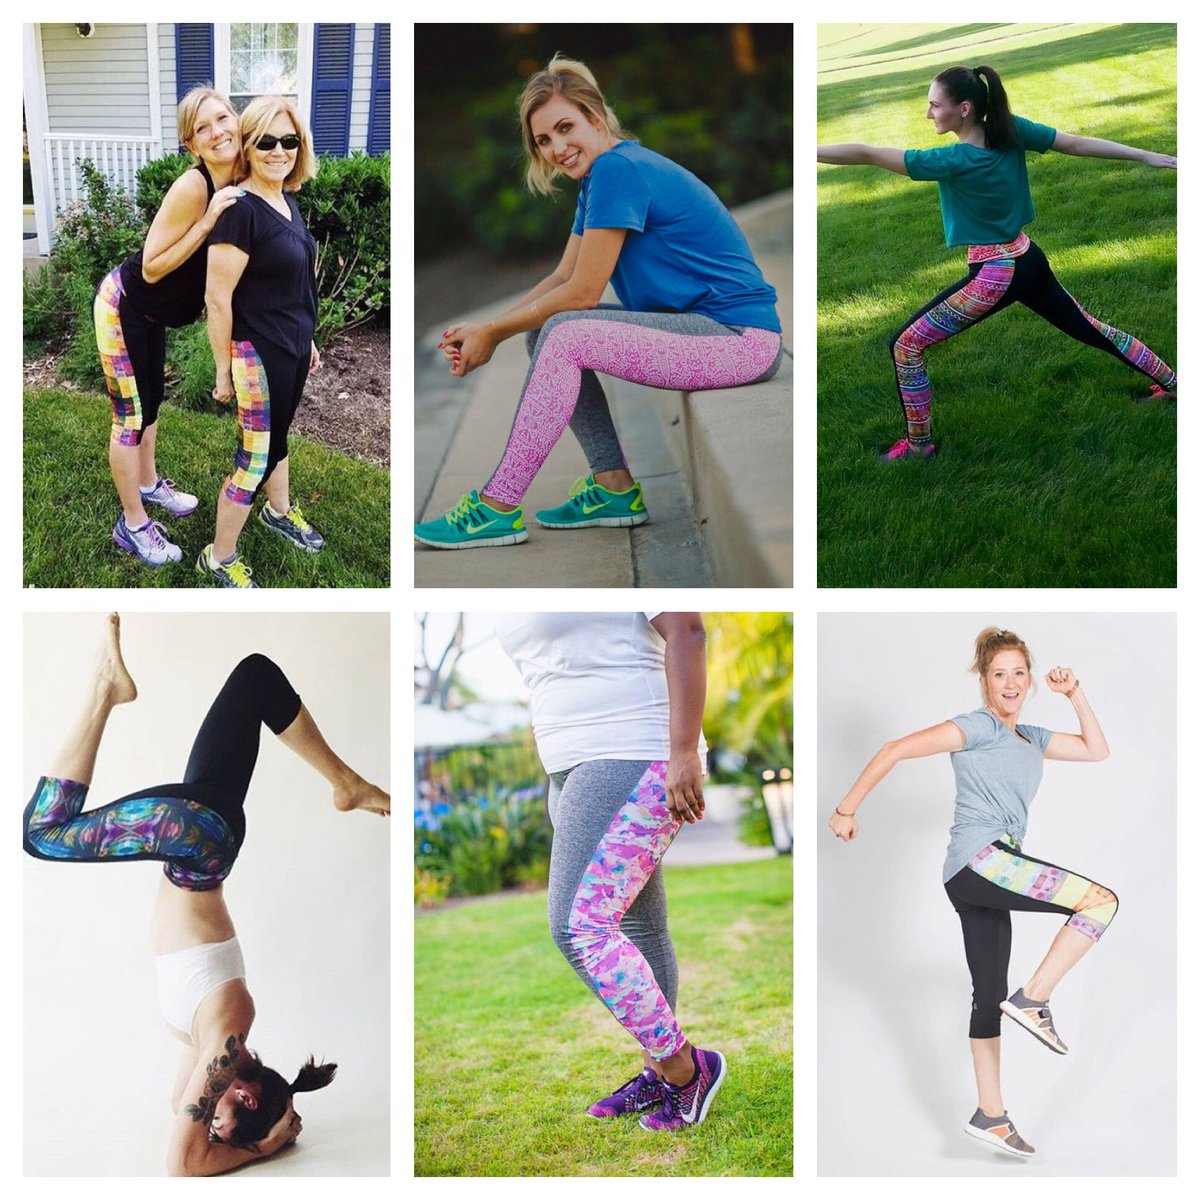 575600fc59abf3 PLEASE TAKE THE POLL IN OUR GROUP TO LET US KNOW IF YOU'D BE INTERESTED IN LULAROE  WORKOUT LEGGINGS?! https://www.facebook.com/groups/LuLaRoeEricaDanielle/ ...